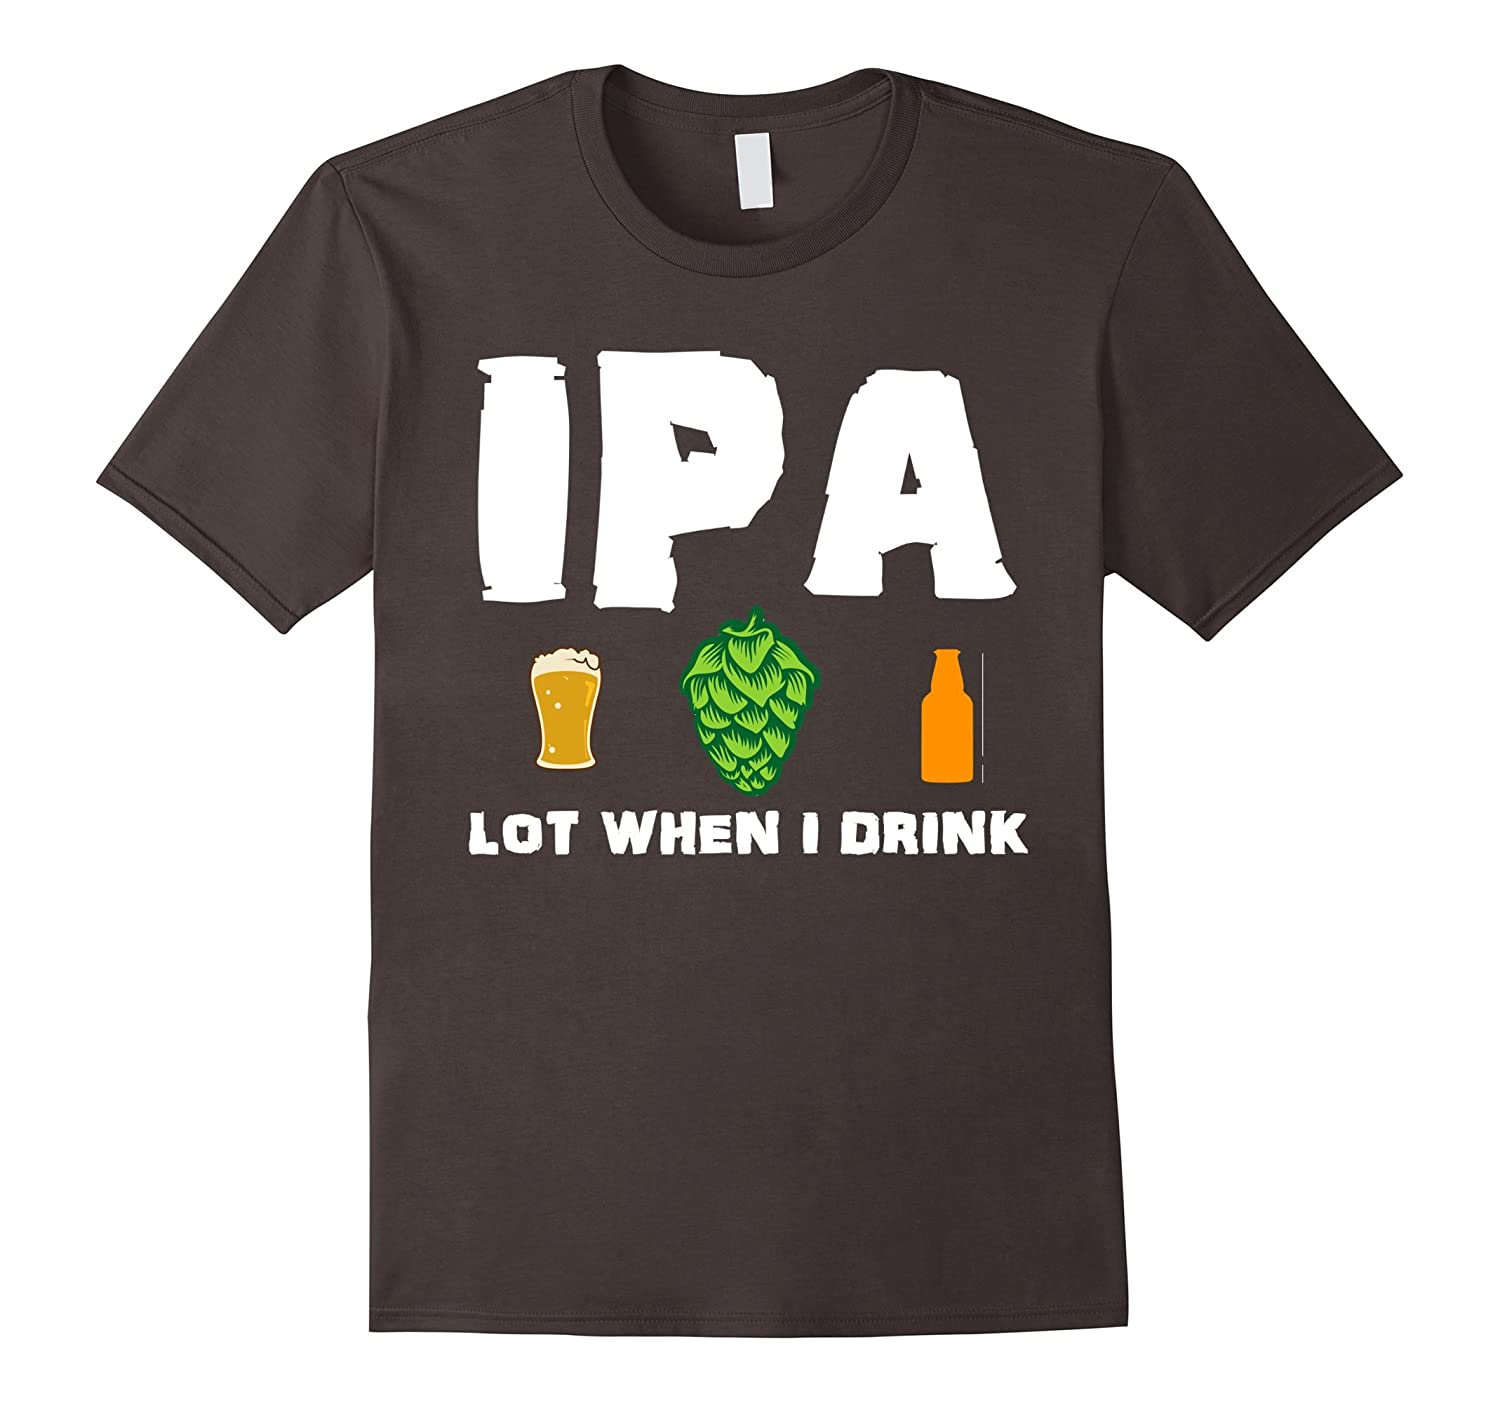 Ipa lot when i drink funny craft beer brewing pun t shirt for Funny craft beer shirts